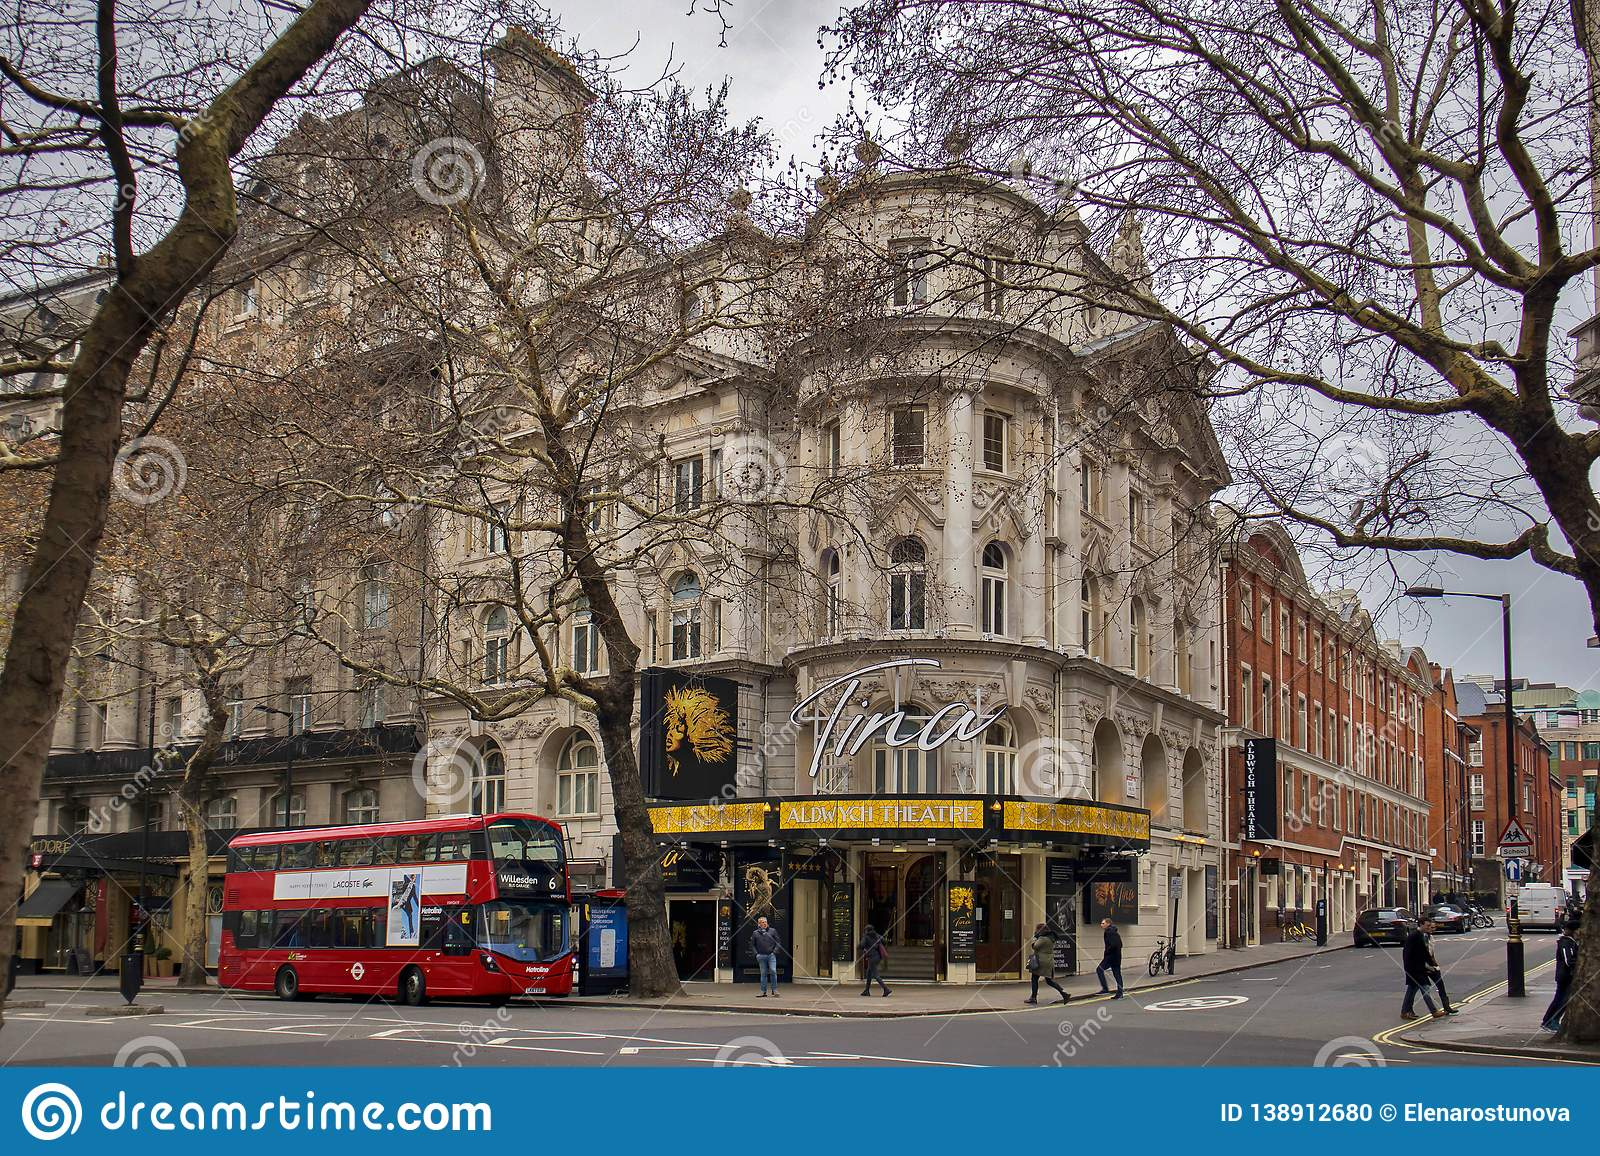 The Entrance To The Aldwych Theatre Where The Musical Tina